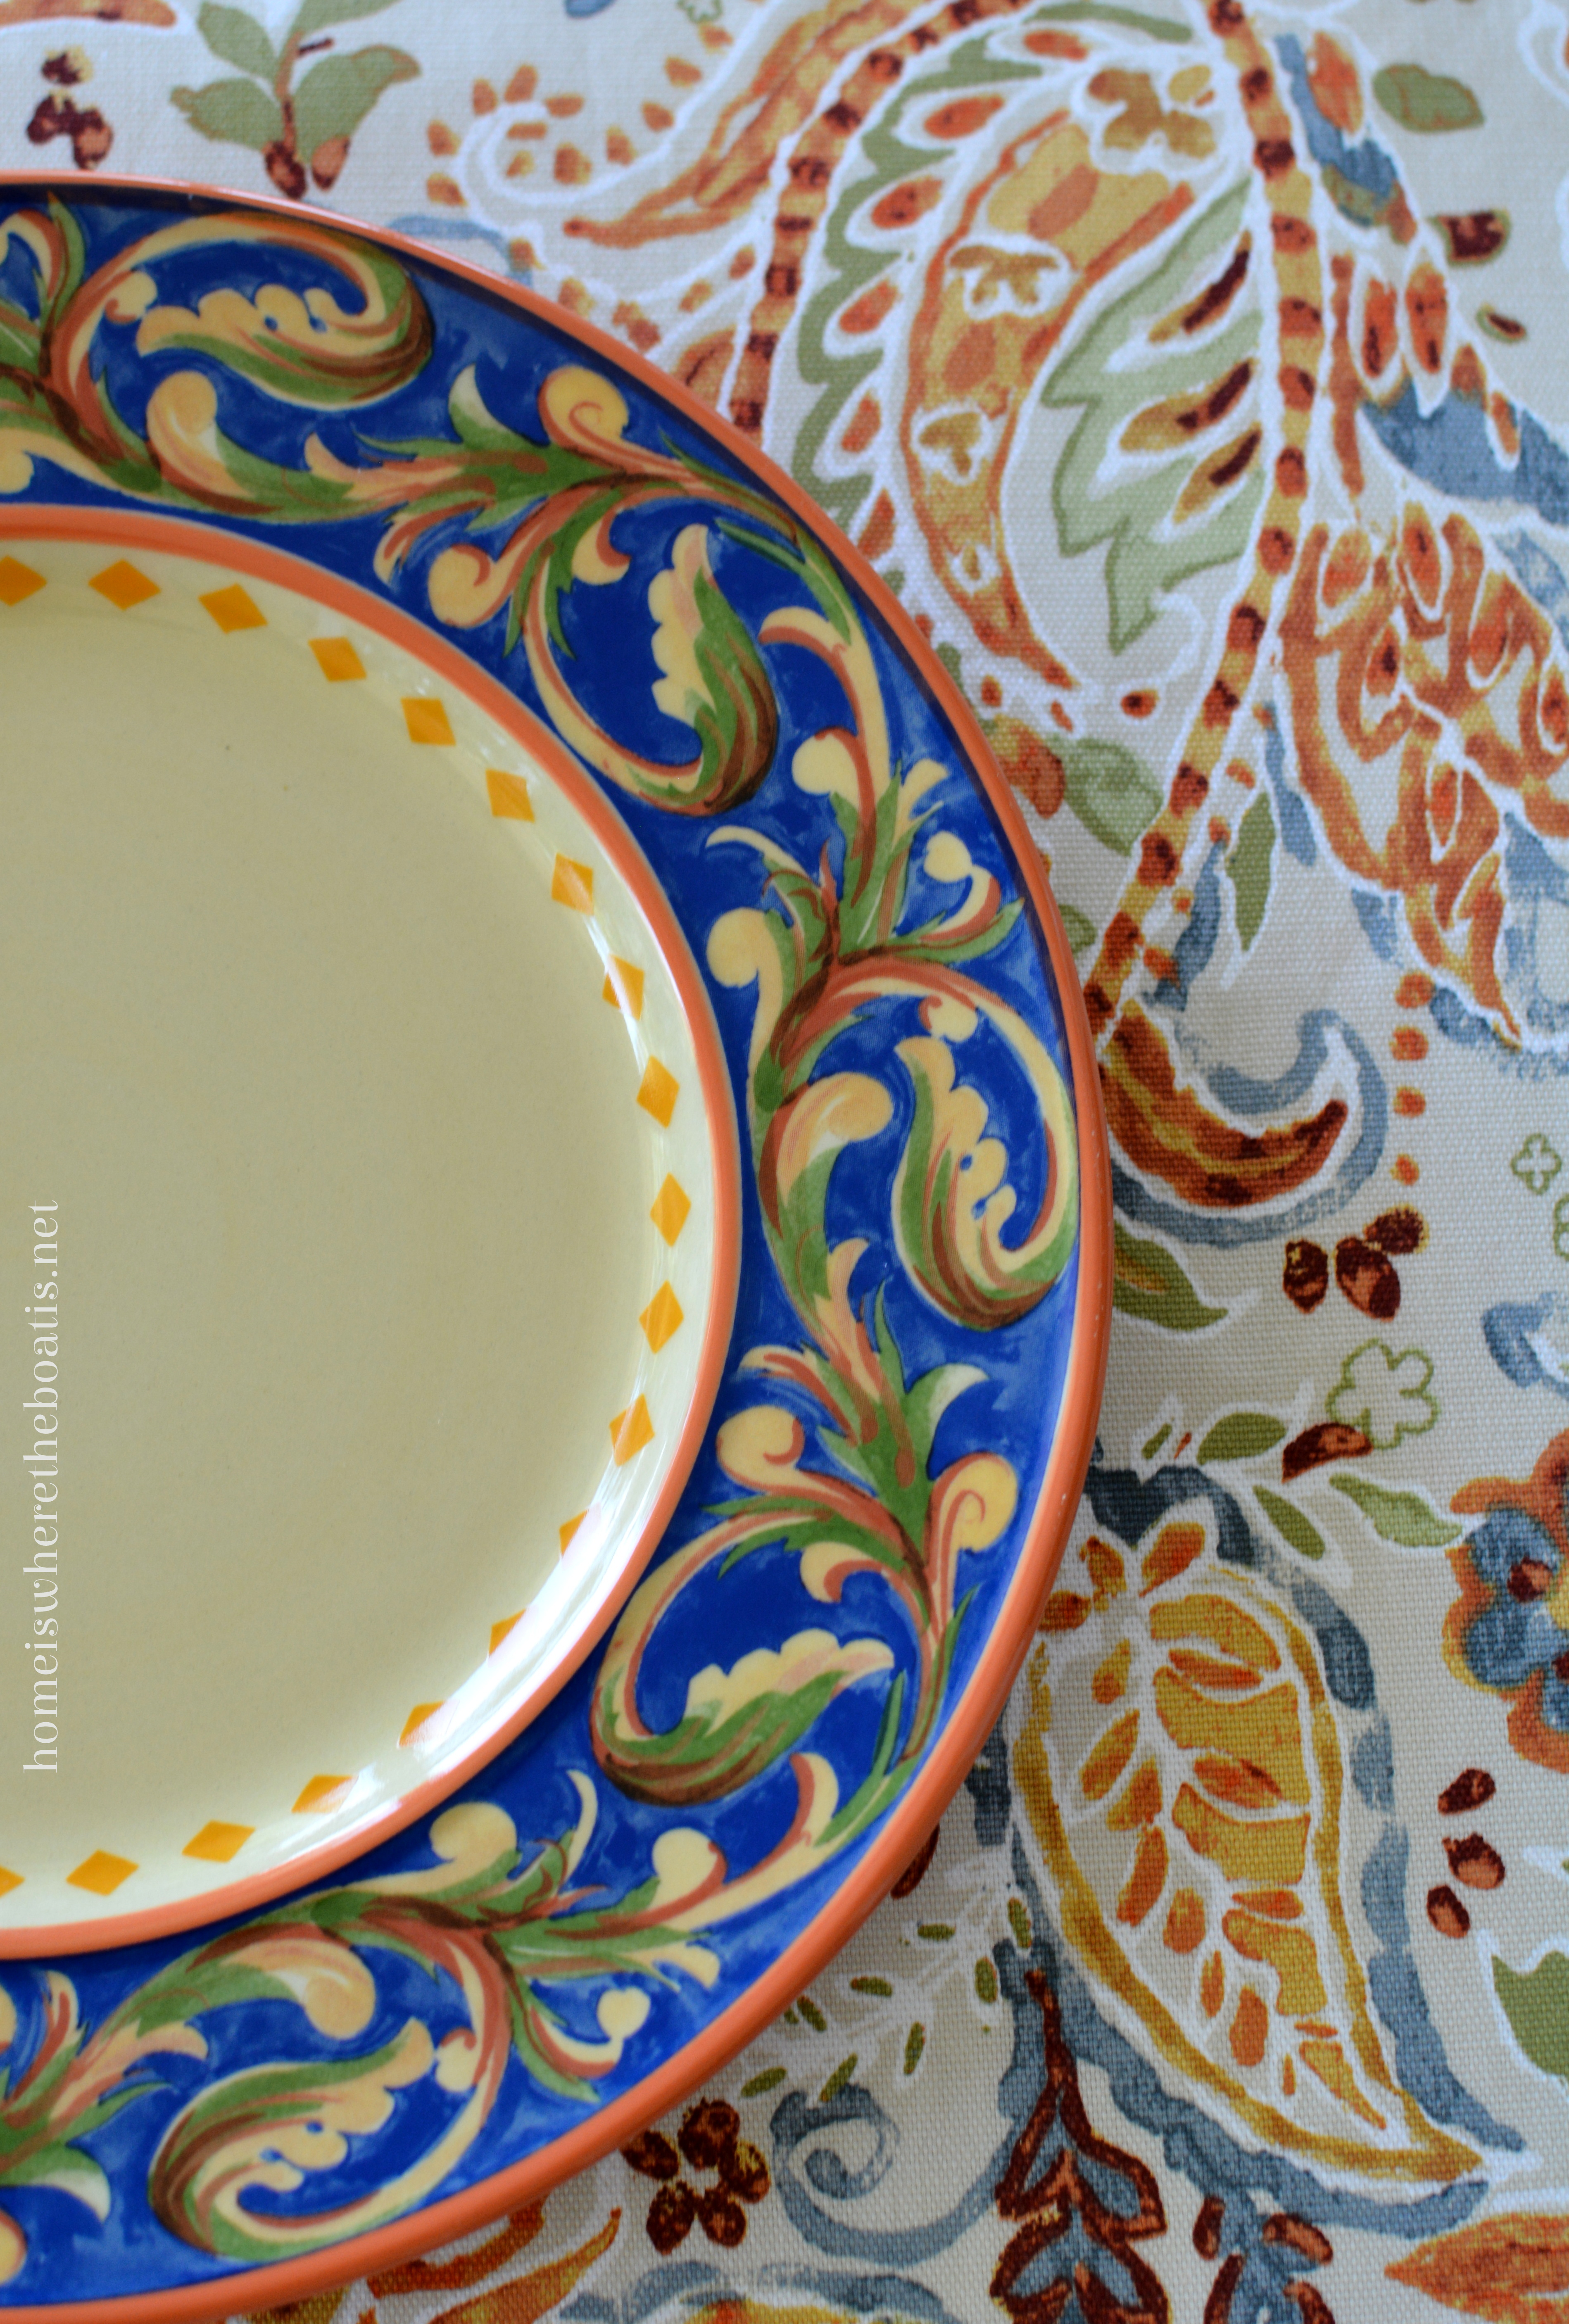 ... stylized paisley pattern provides a foundation for the table with a similar acanthus leaf found in the border of the Villa della Luna plates and mugs. & A Lakeside Table with Pfaltzgraff Villa della Luna Dinnerware u2013 Home ...